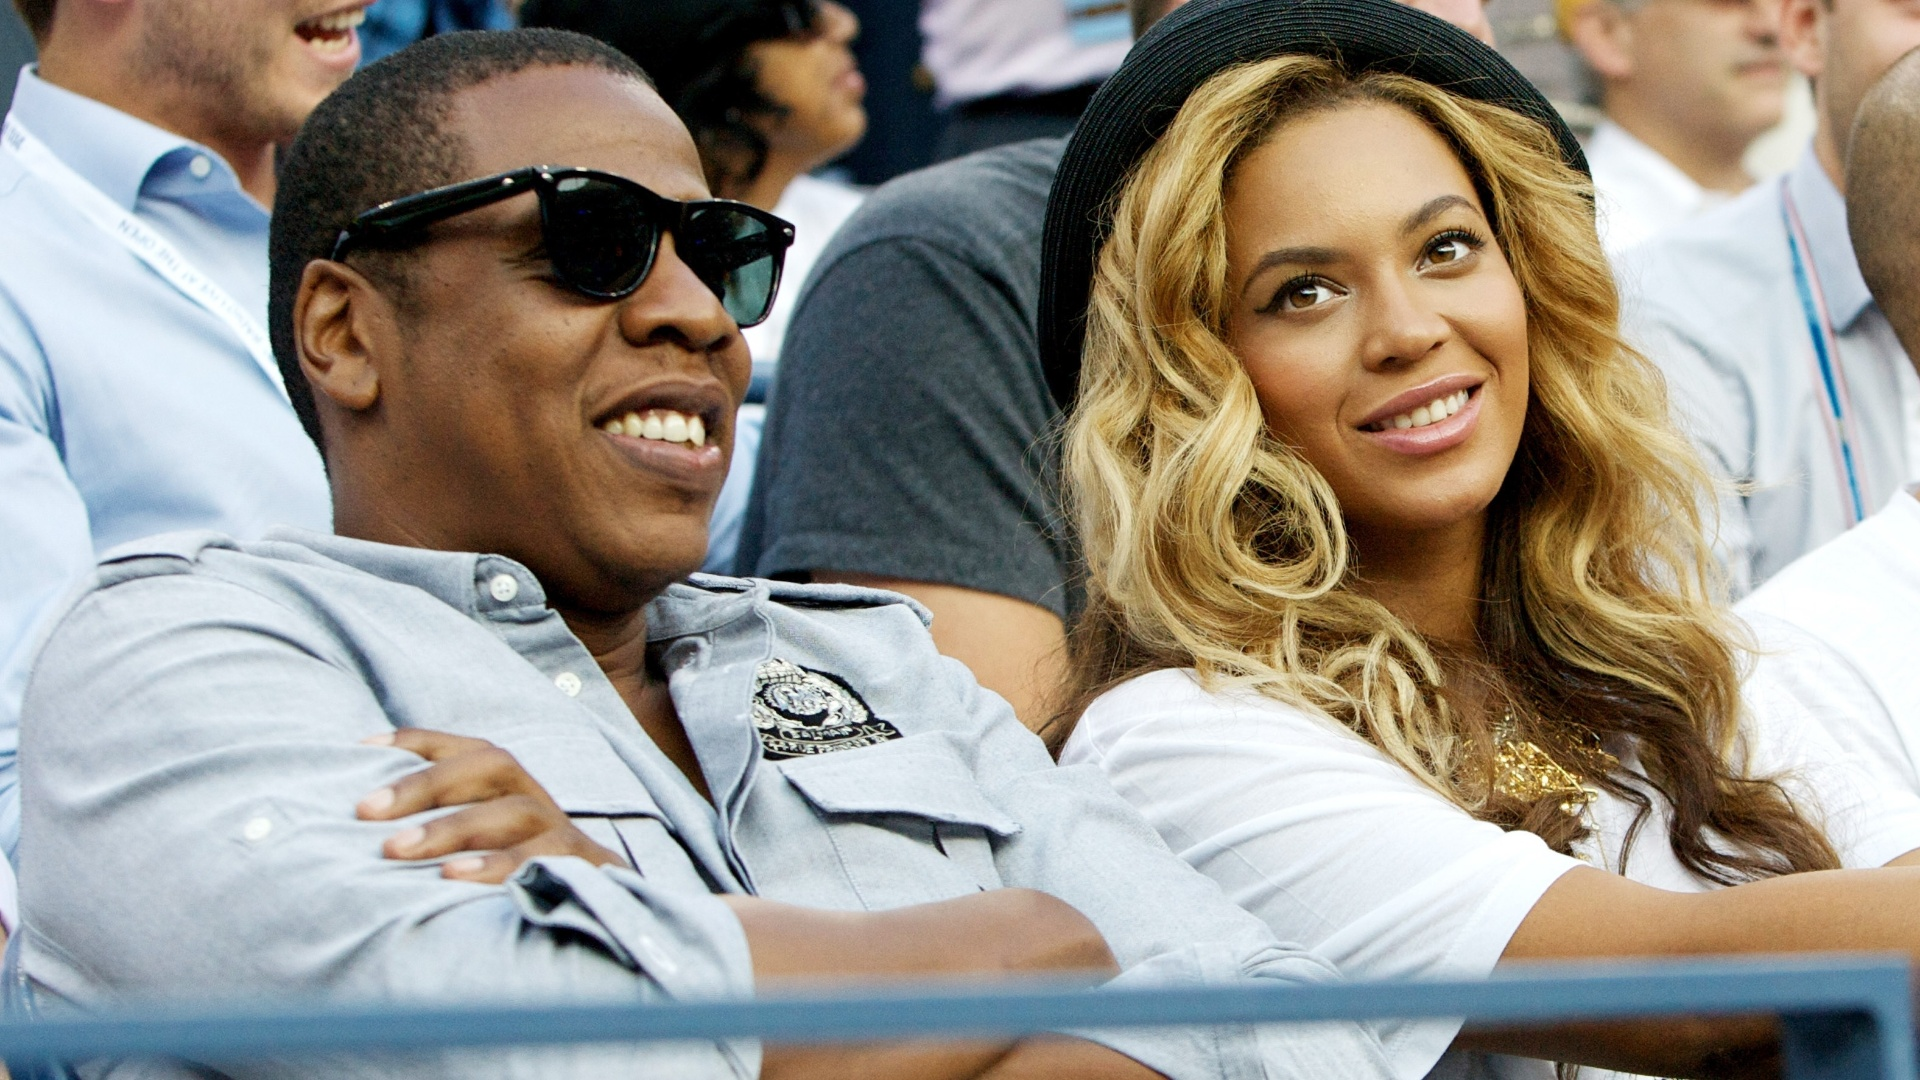 Grvida do primeiro filho, cantora Beyonc e o marido Jay-Z assistem torneio de tnis (12/9/11)